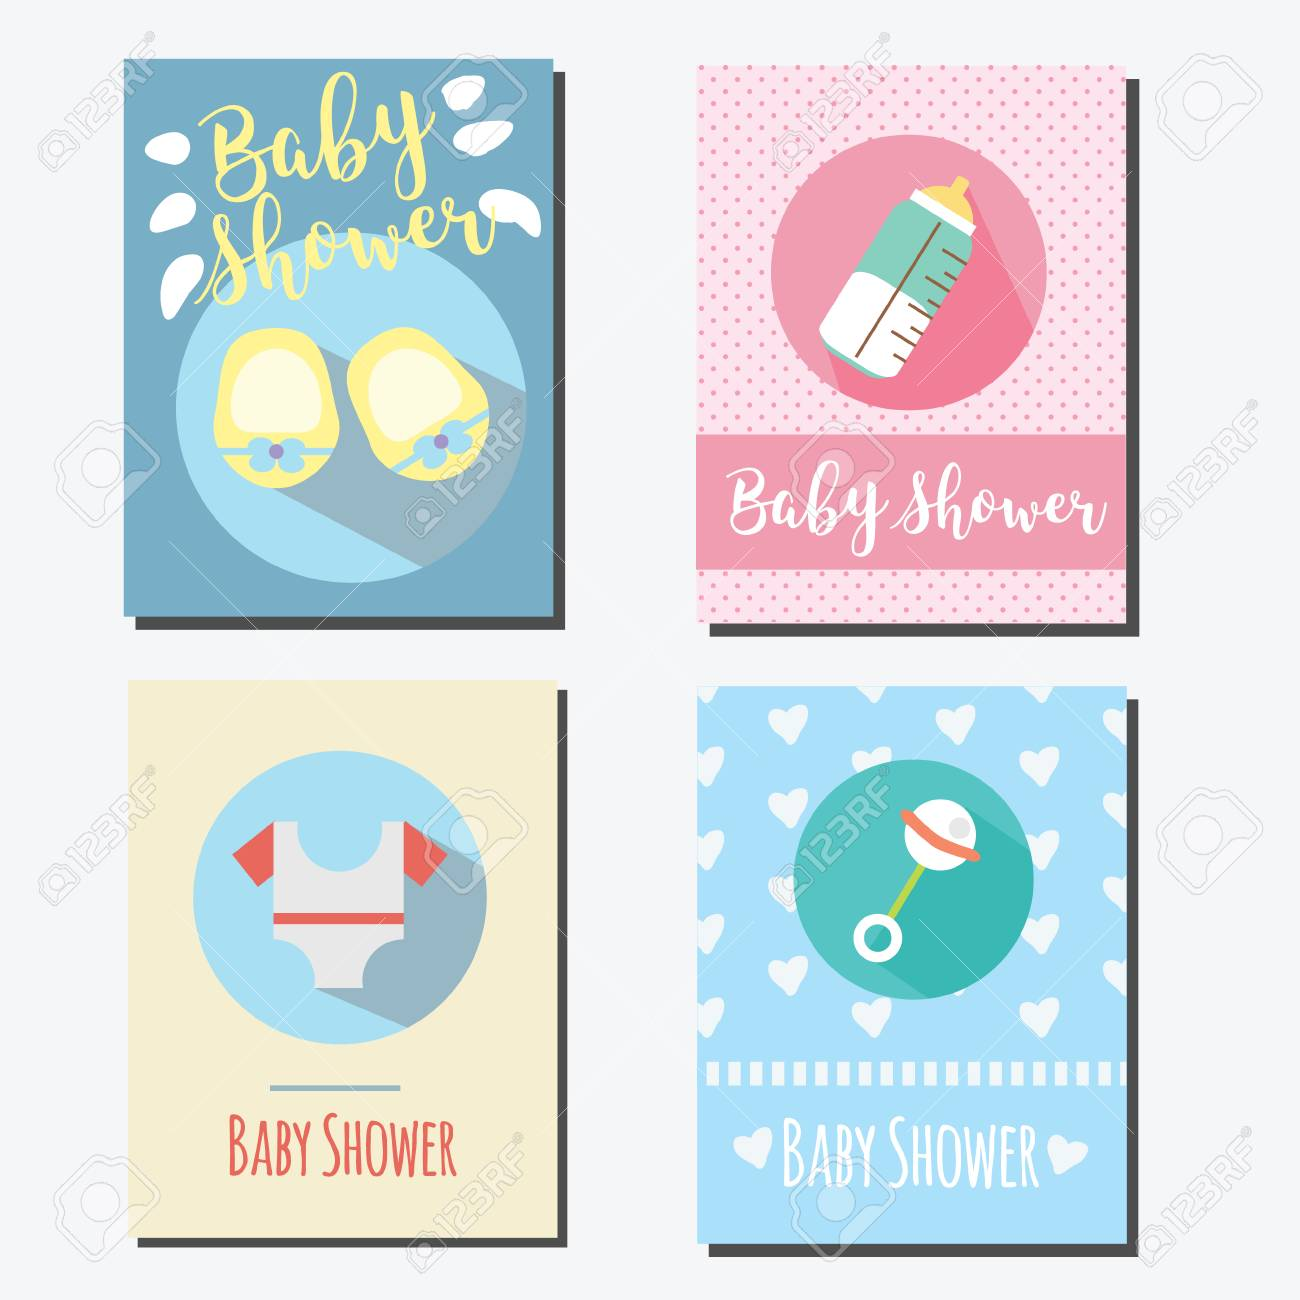 Baby Shower Party Cards Invitations Design Templates Design